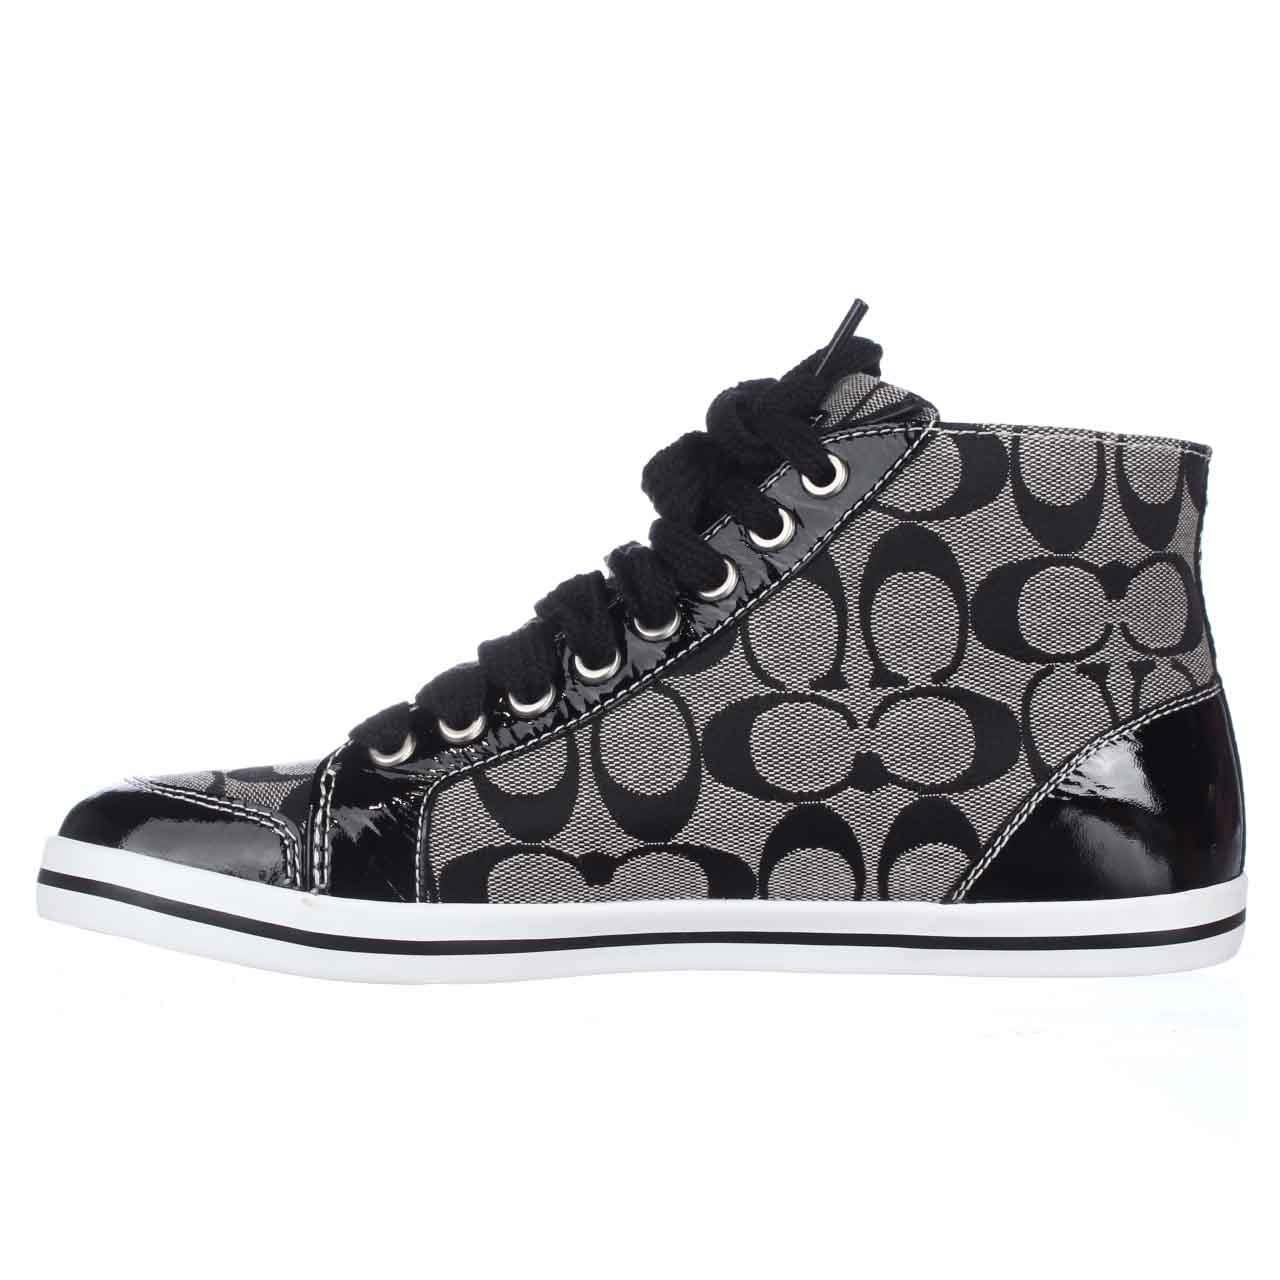 FOOTWEAR - High-tops & sneakers Coach xQwJdXJP